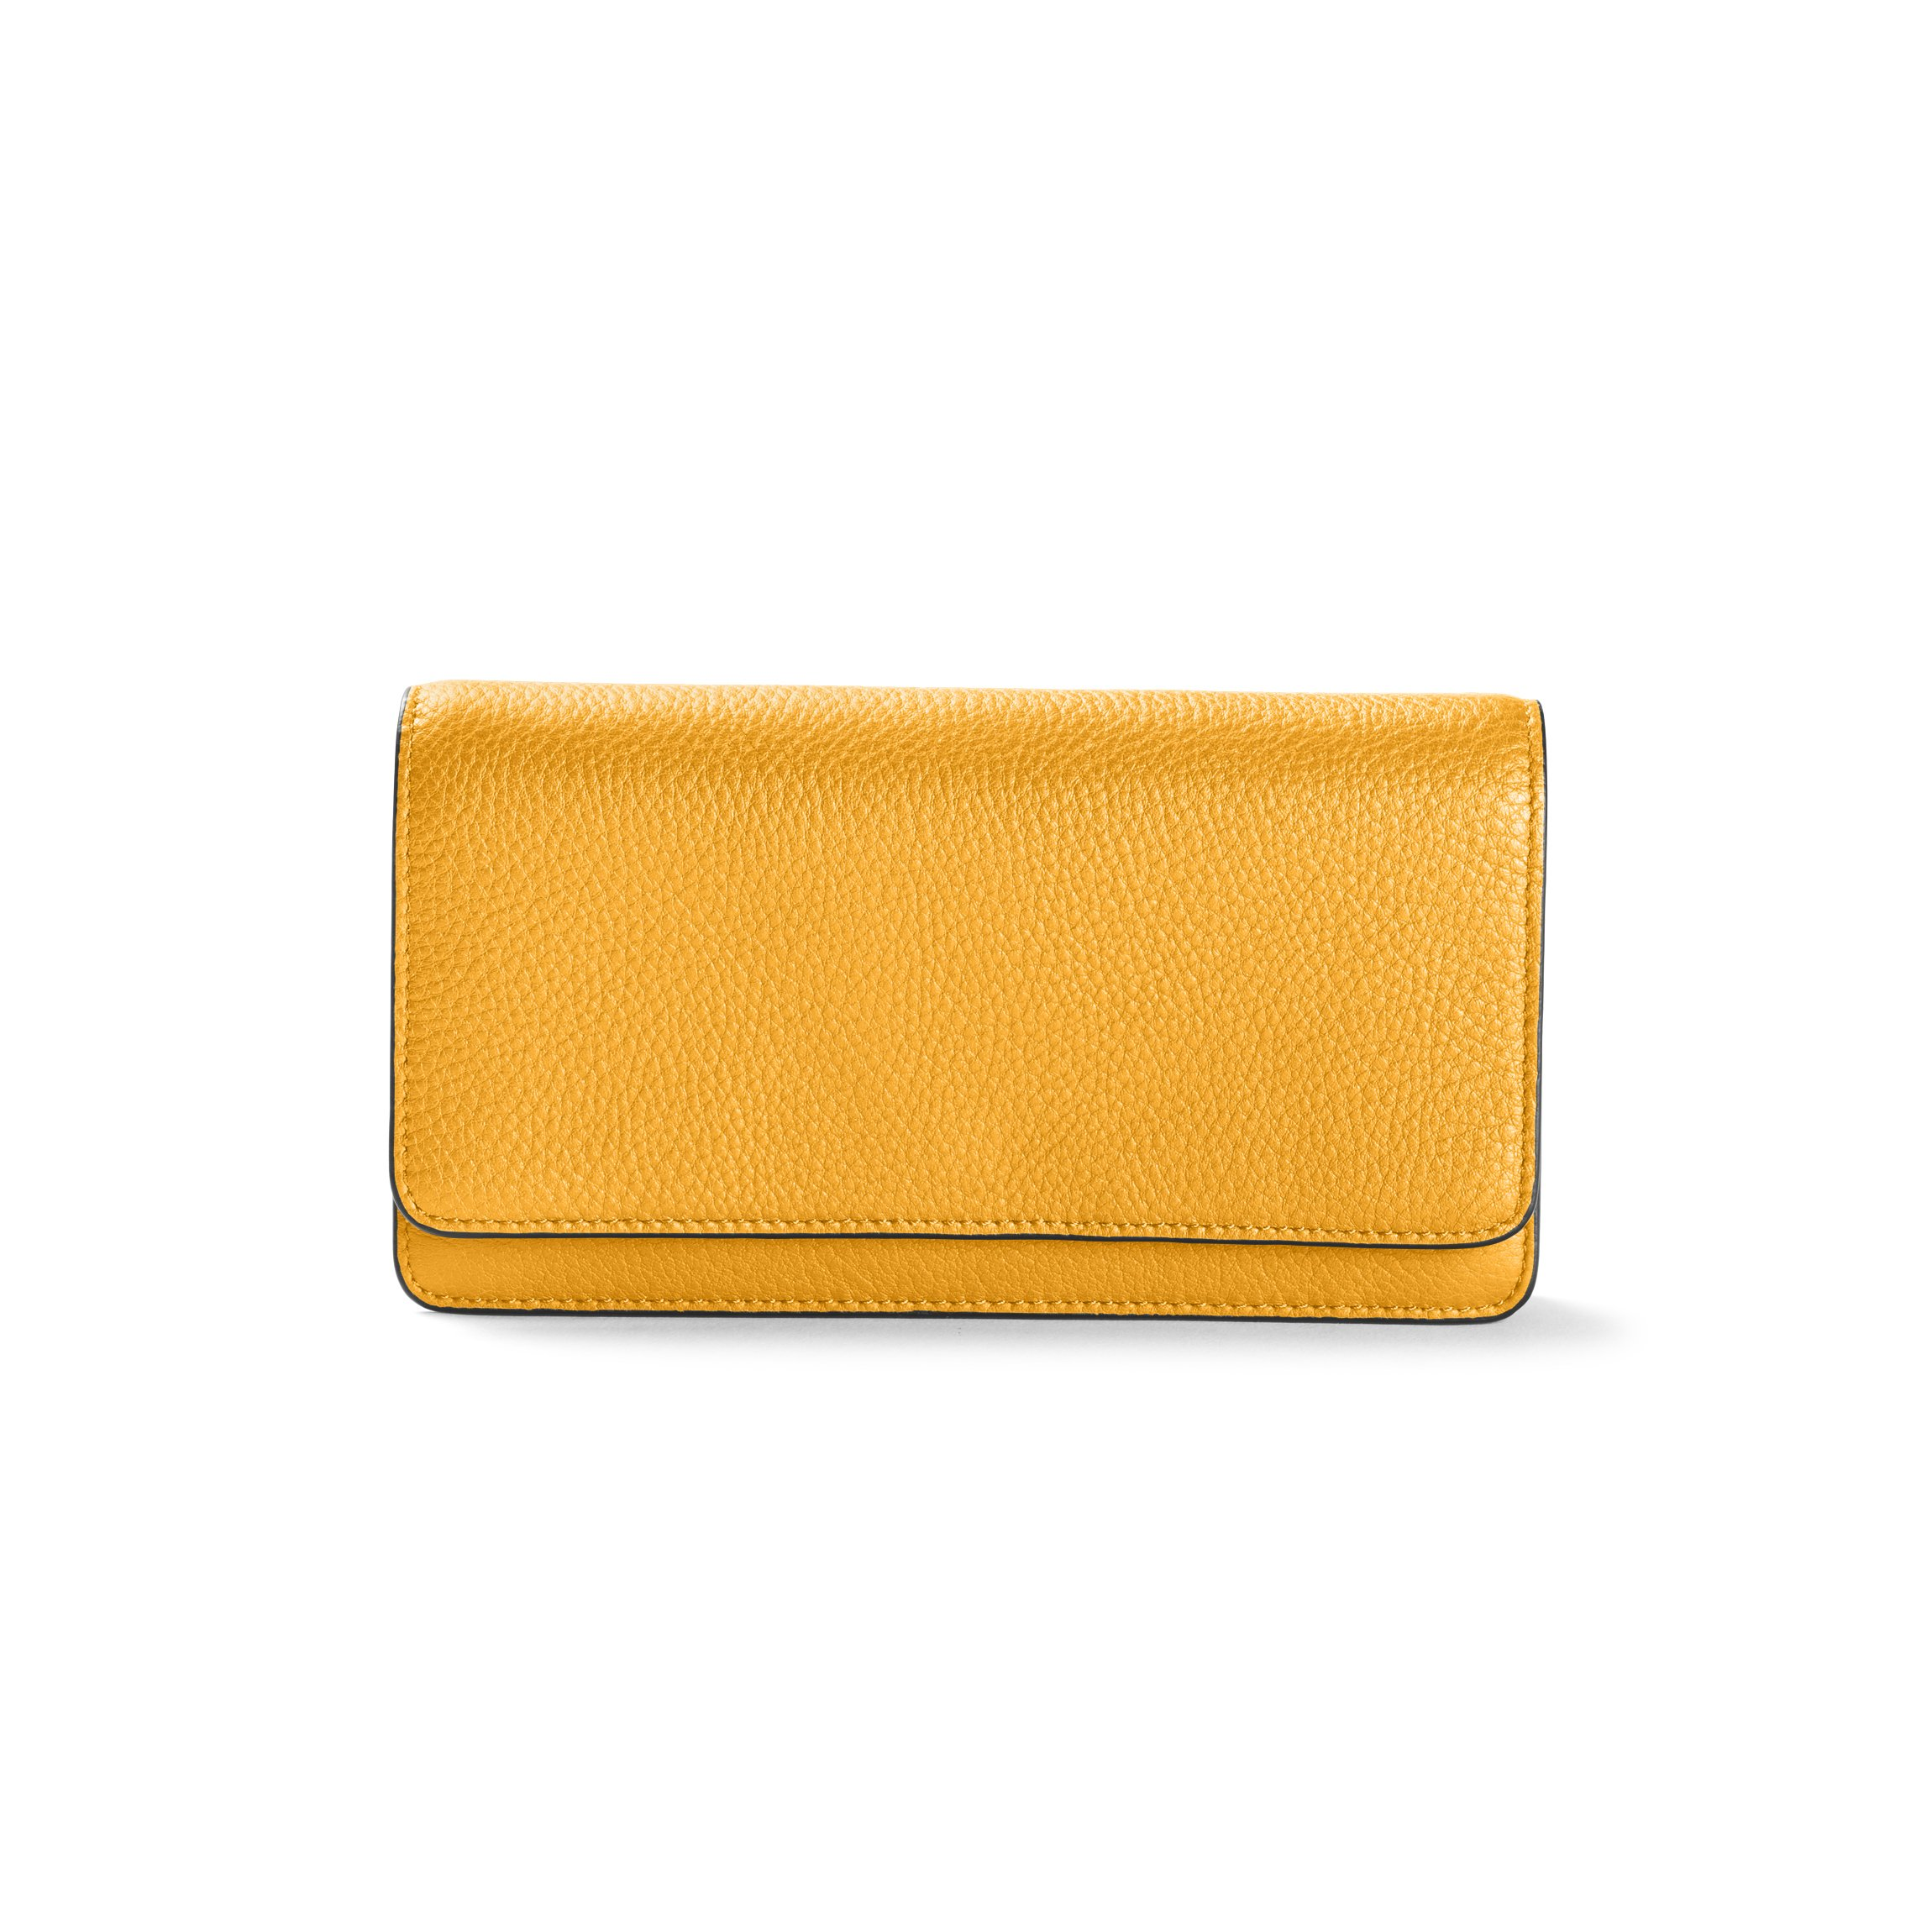 Katy Snap Wallet - Full Grain Leather Leather - Turmeric (yellow)